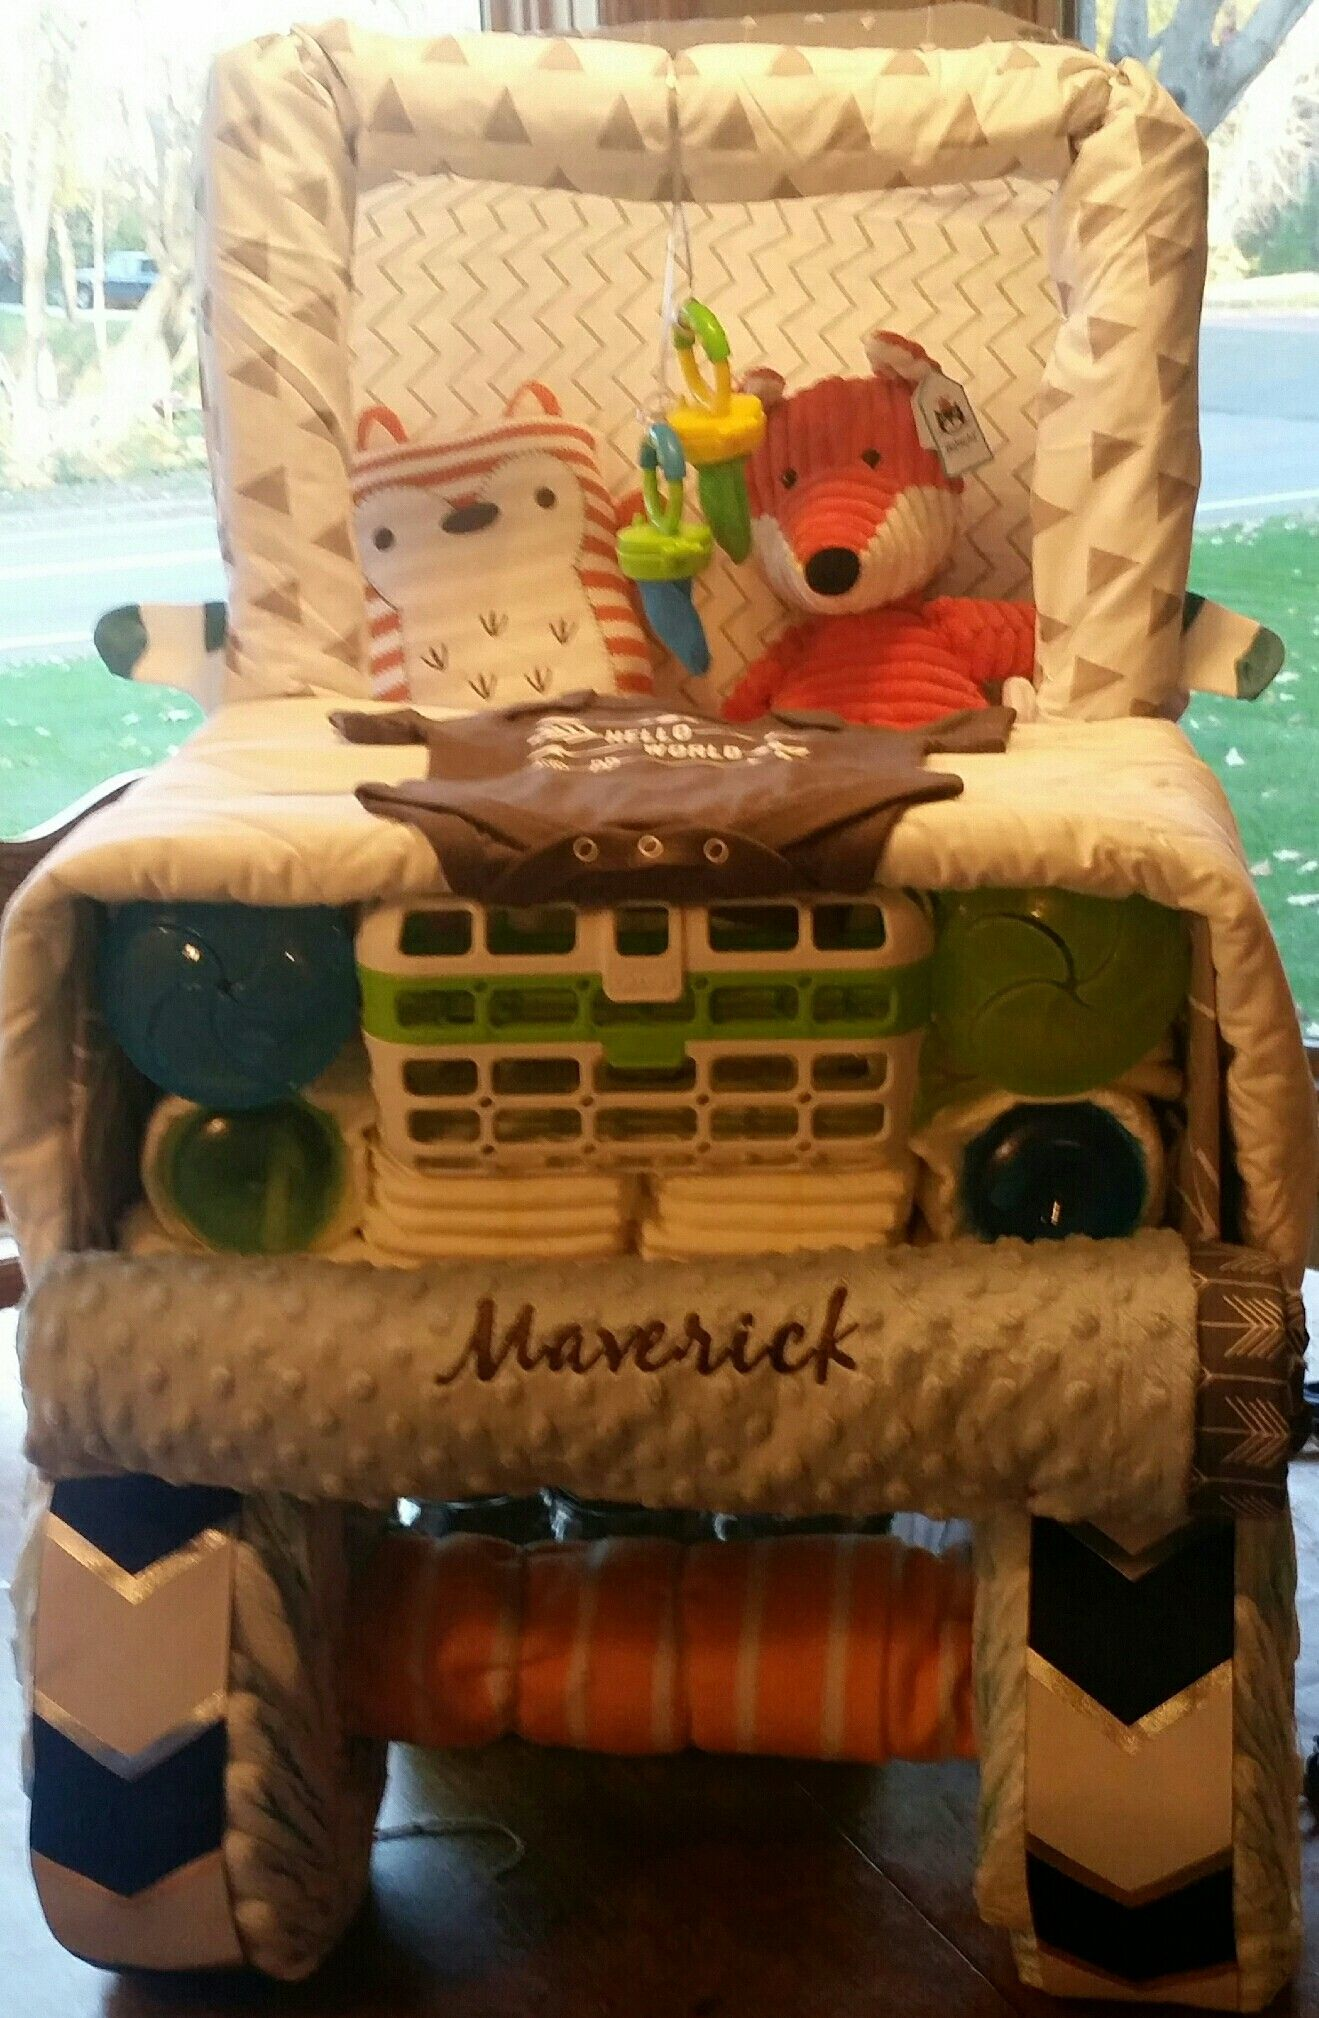 Diy diaper jeep with personalized blanket as license plate